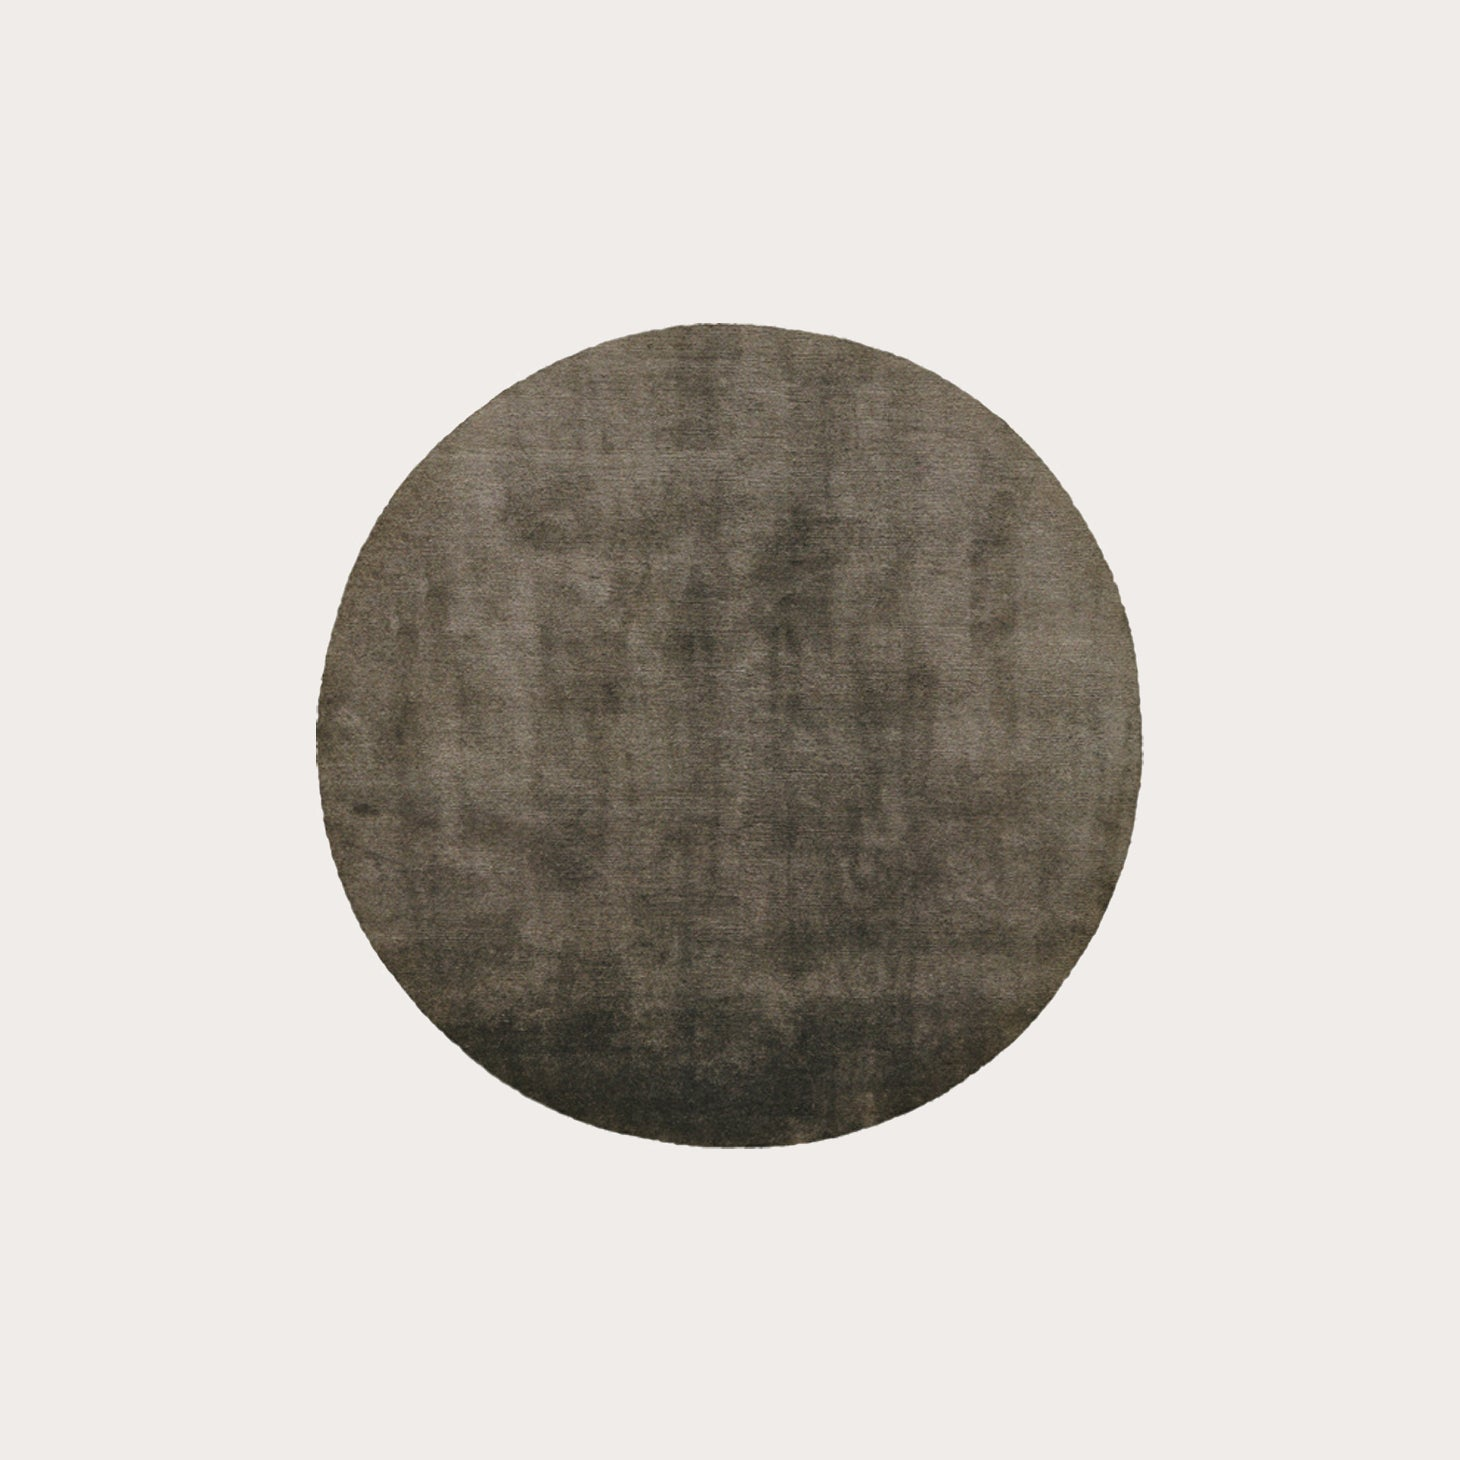 Mohair Slate Round Rugs The Rug Company Designer Furniture Sku: 391-150-11466